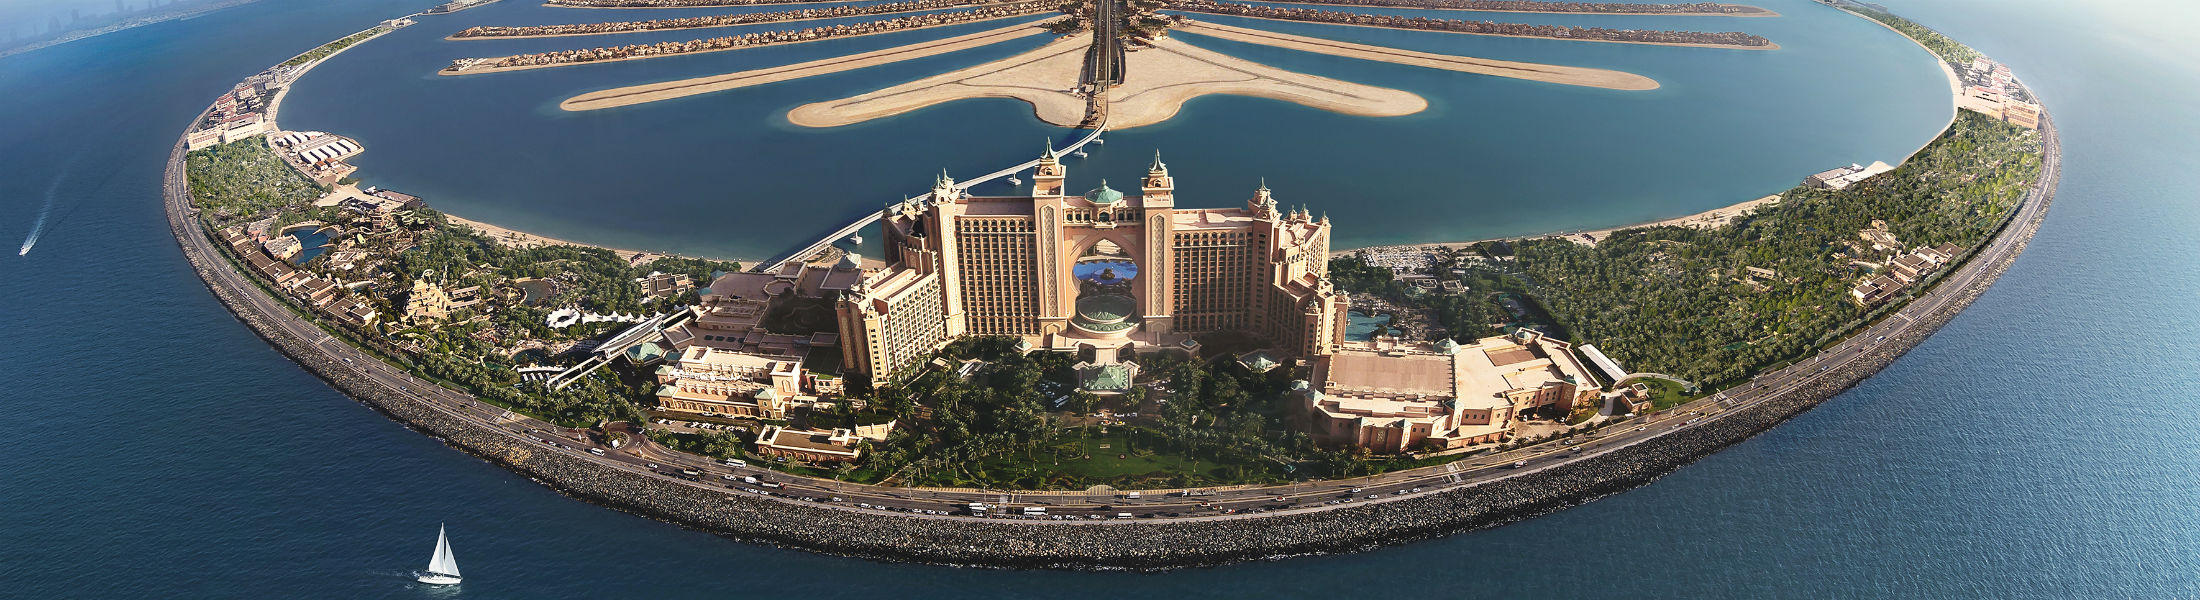 Aerial shot of the resorts landscape at the Atlantis The Palm